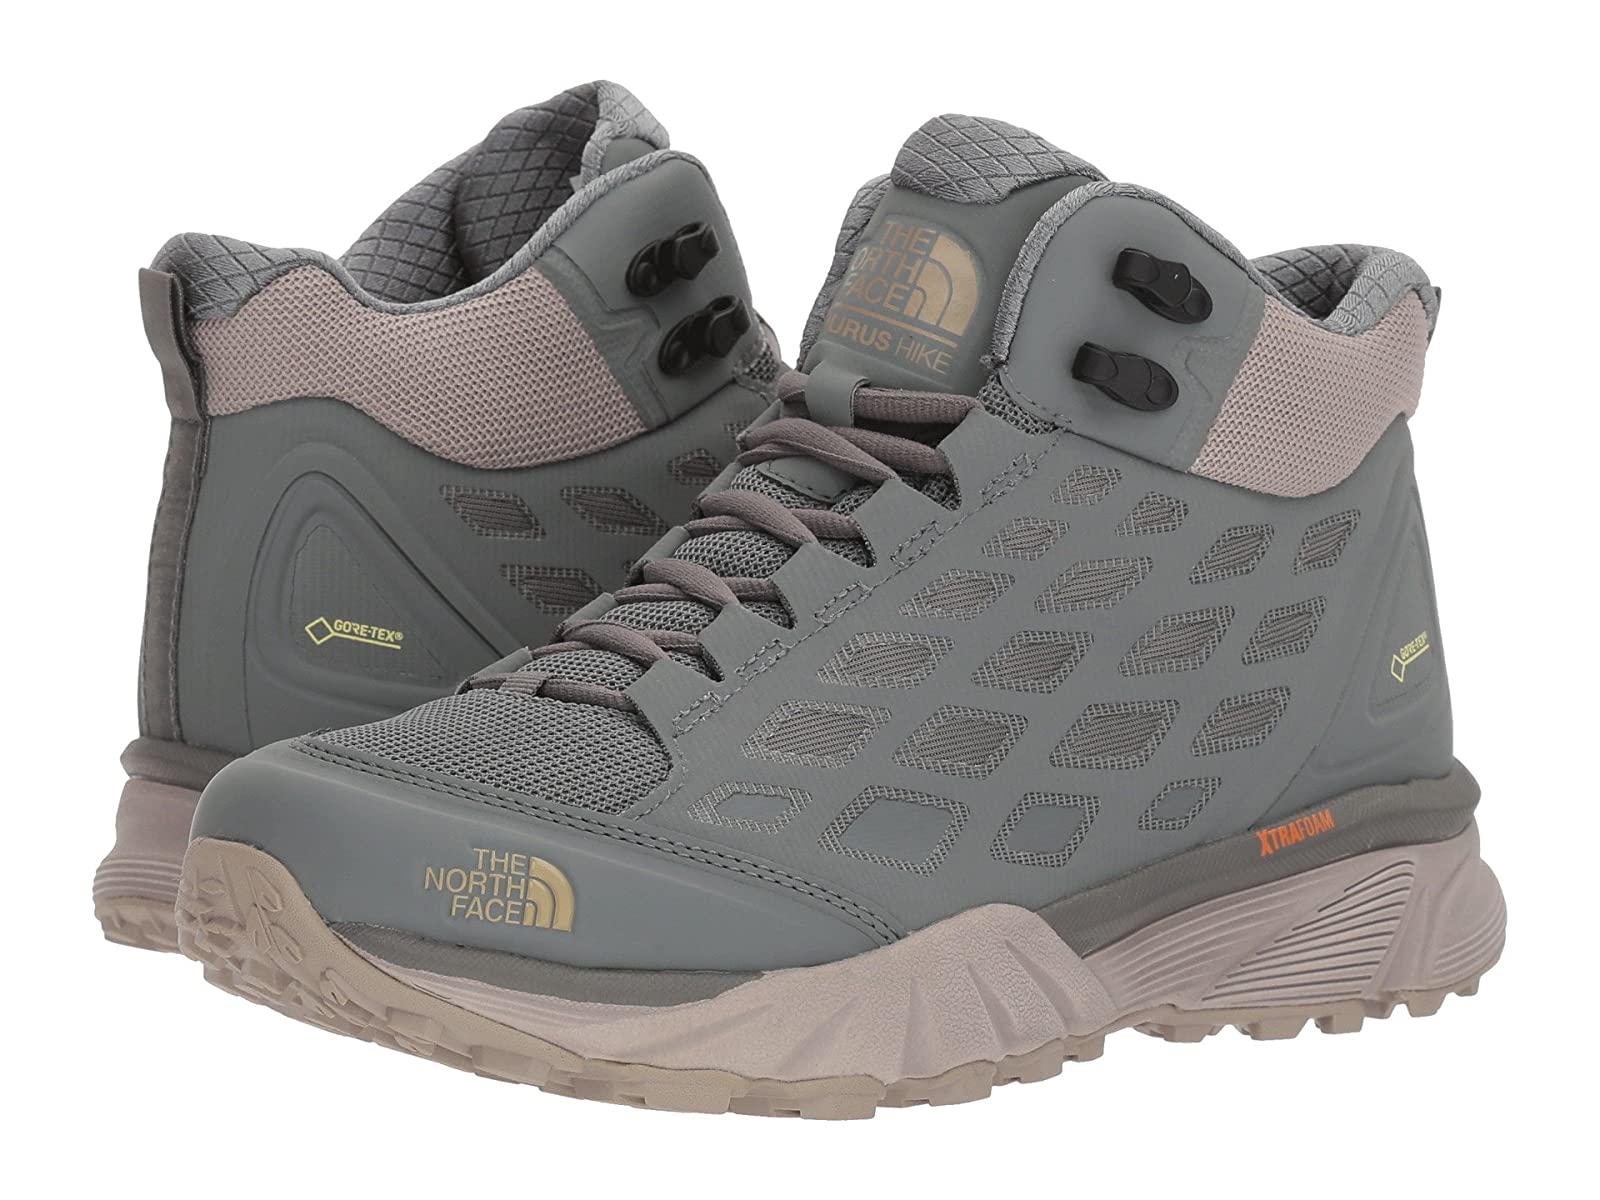 The North Face Endurus Hike Mid GTX®Cheap and distinctive eye-catching shoes